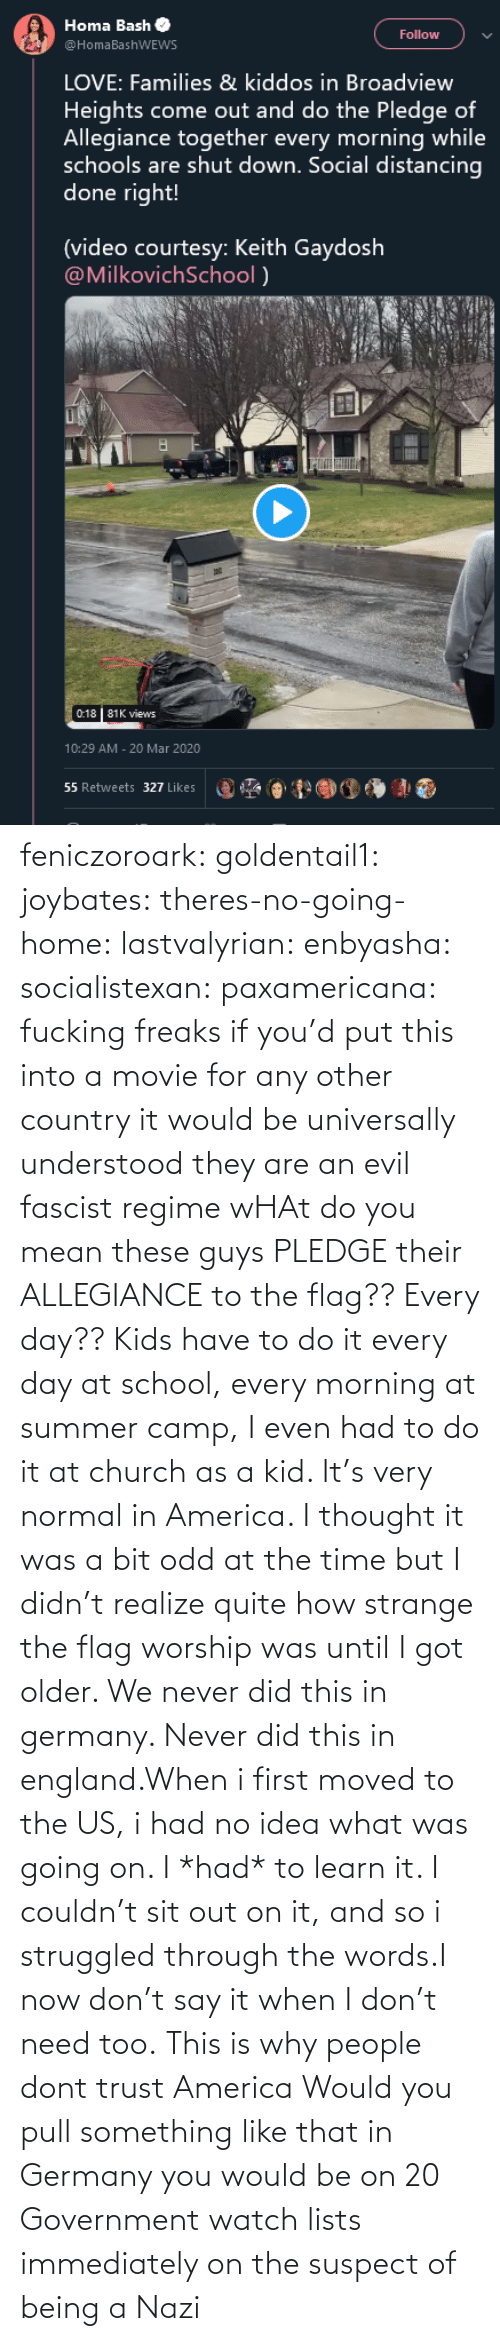 America, Church, and England: feniczoroark:  goldentail1:  joybates:  theres-no-going-home:  lastvalyrian:  enbyasha:  socialistexan:  paxamericana: fucking freaks       if you'd put this into a movie for any other country it would be universally understood they are an evil fascist regime    wHAt do you mean these guys PLEDGE their ALLEGIANCE to the flag?? Every day??   Kids have to do it every day at school, every morning at summer camp, I even had to do it at church as a kid. It's very normal in America. I thought it was a bit odd at the time but I didn't realize quite how strange the flag worship was until I got older.    We never did this in germany. Never did this in england.When i first moved to the US, i had no idea what was going on. I *had* to learn it. I couldn't sit out on it, and so i struggled through the words.I now don't say it when I don't need too.   This is why people dont trust America    Would you pull something like that in Germany you would be on 20 Government watch lists immediately on the suspect of being a Nazi